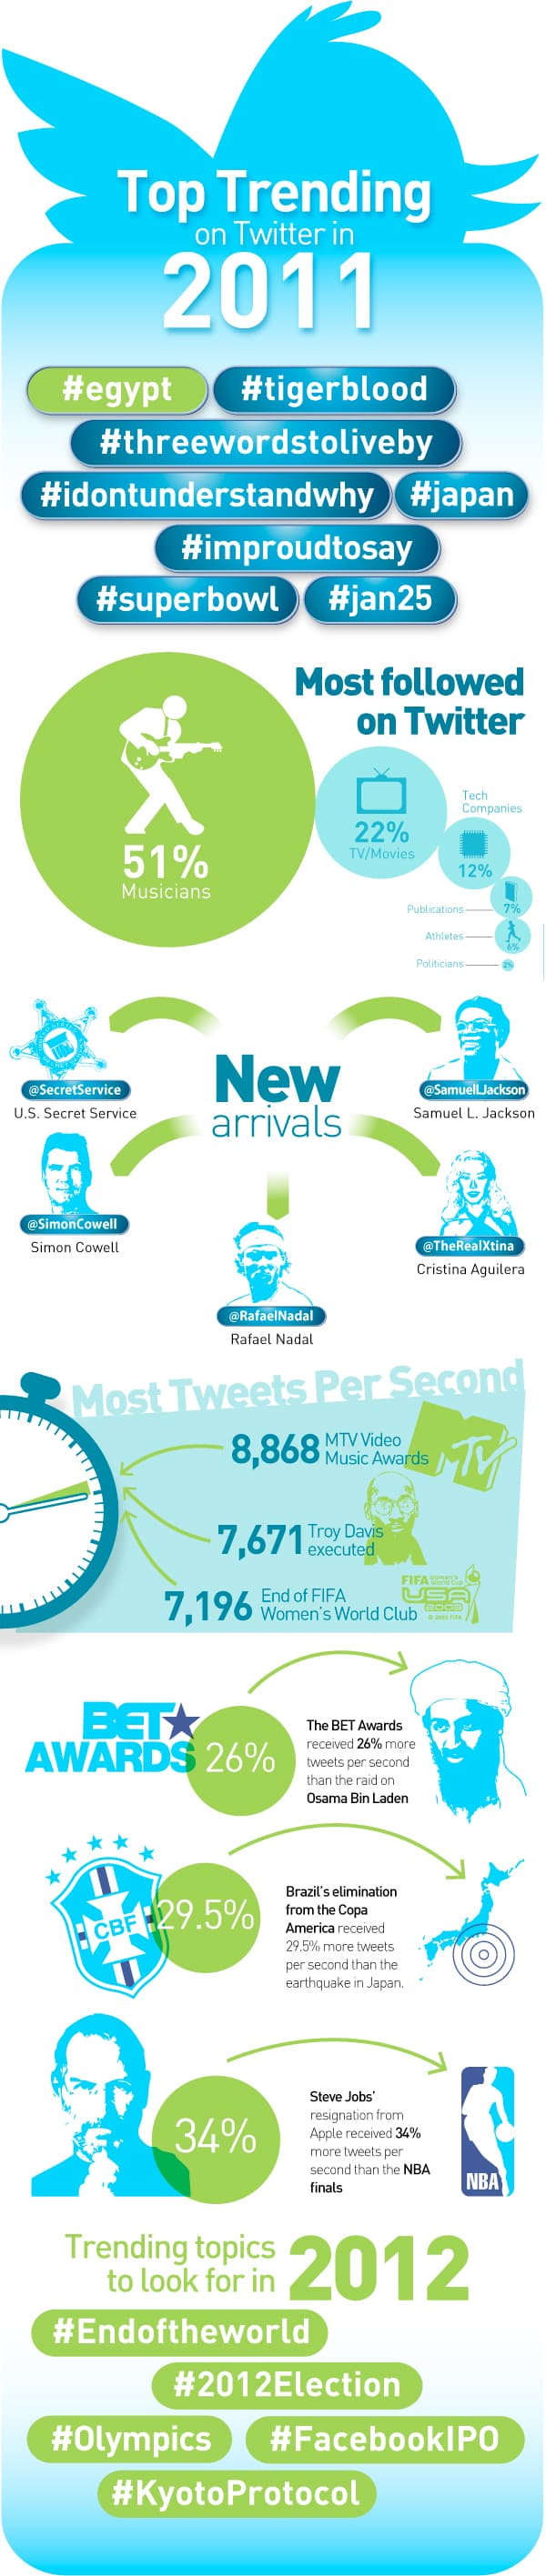 A Year in Twitter Top Trends of 2011 Infographic